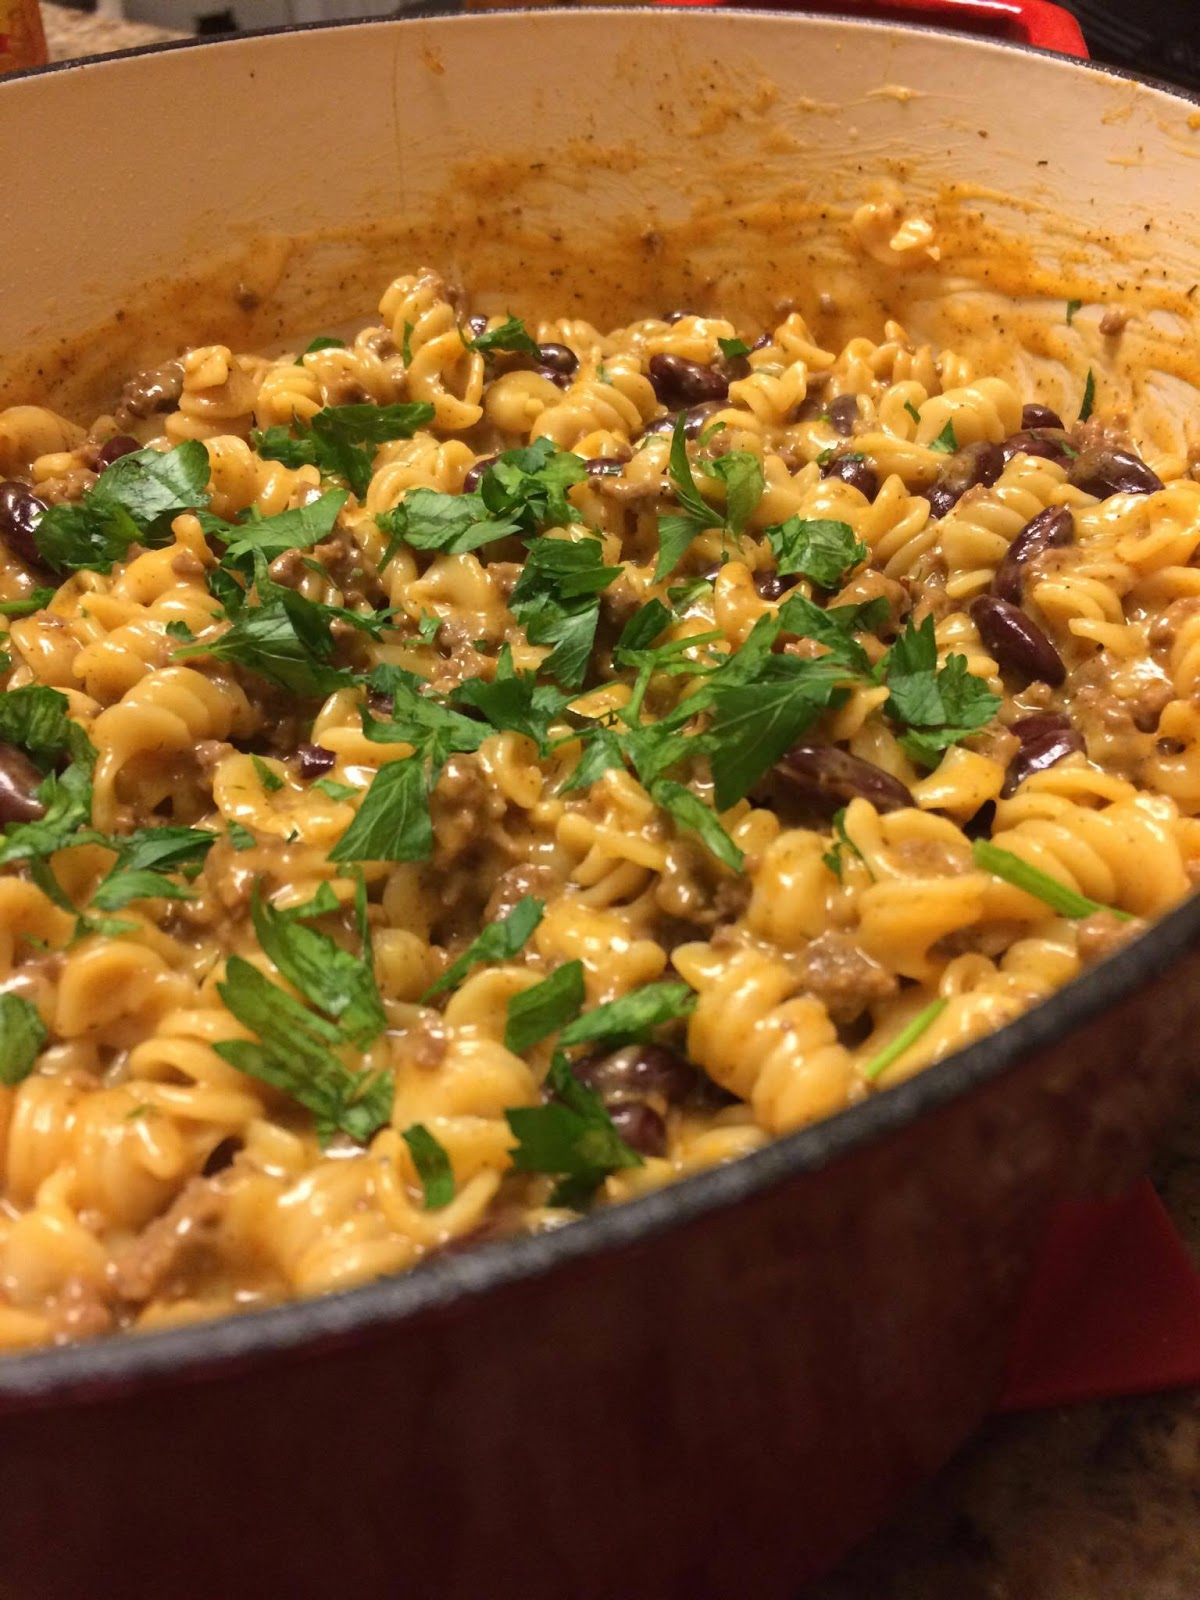 |Dinner in $15| One Pot Cheesy Taco Pasta